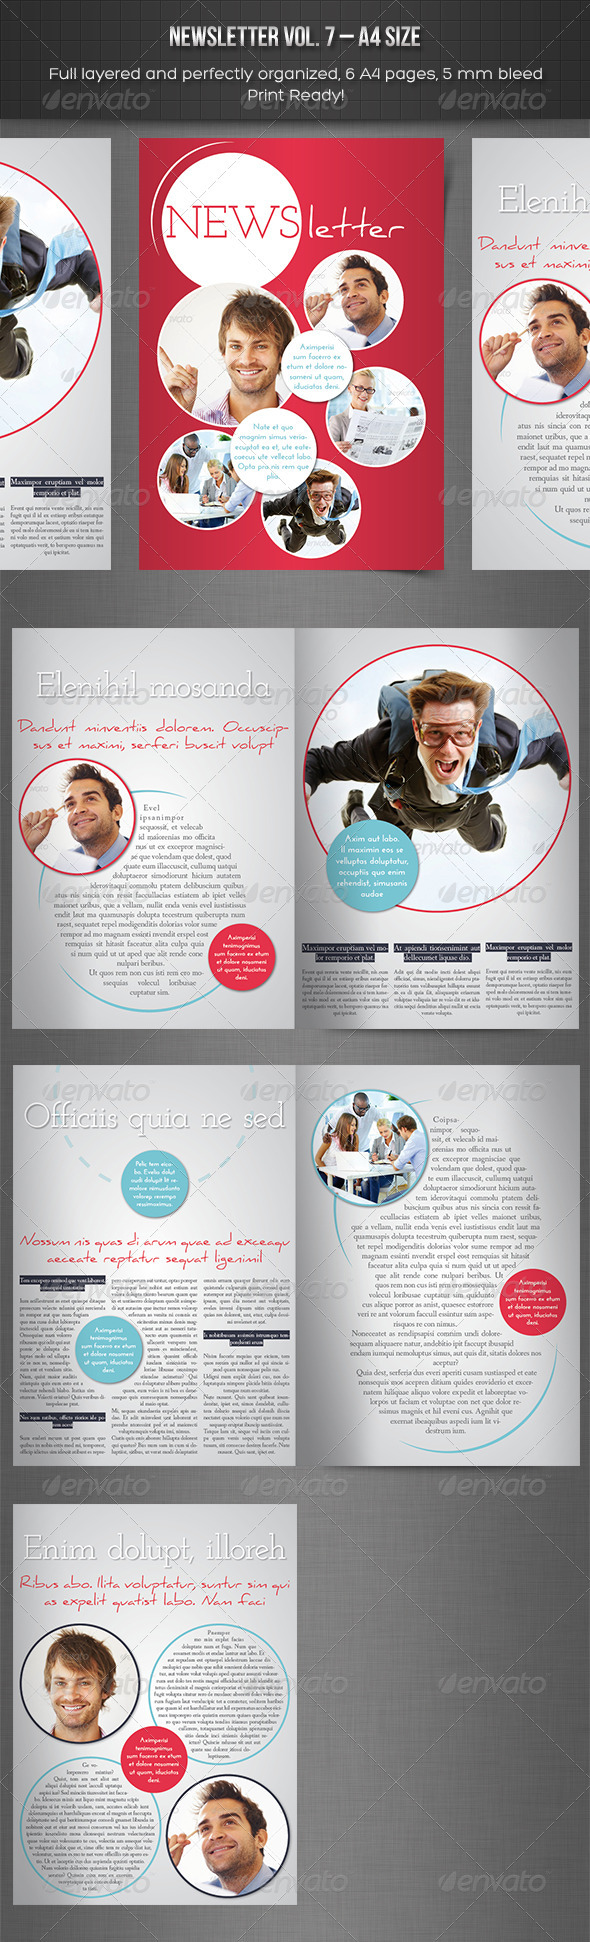 GraphicRiver Newsletter Vol 7 Indesign Template 3785261